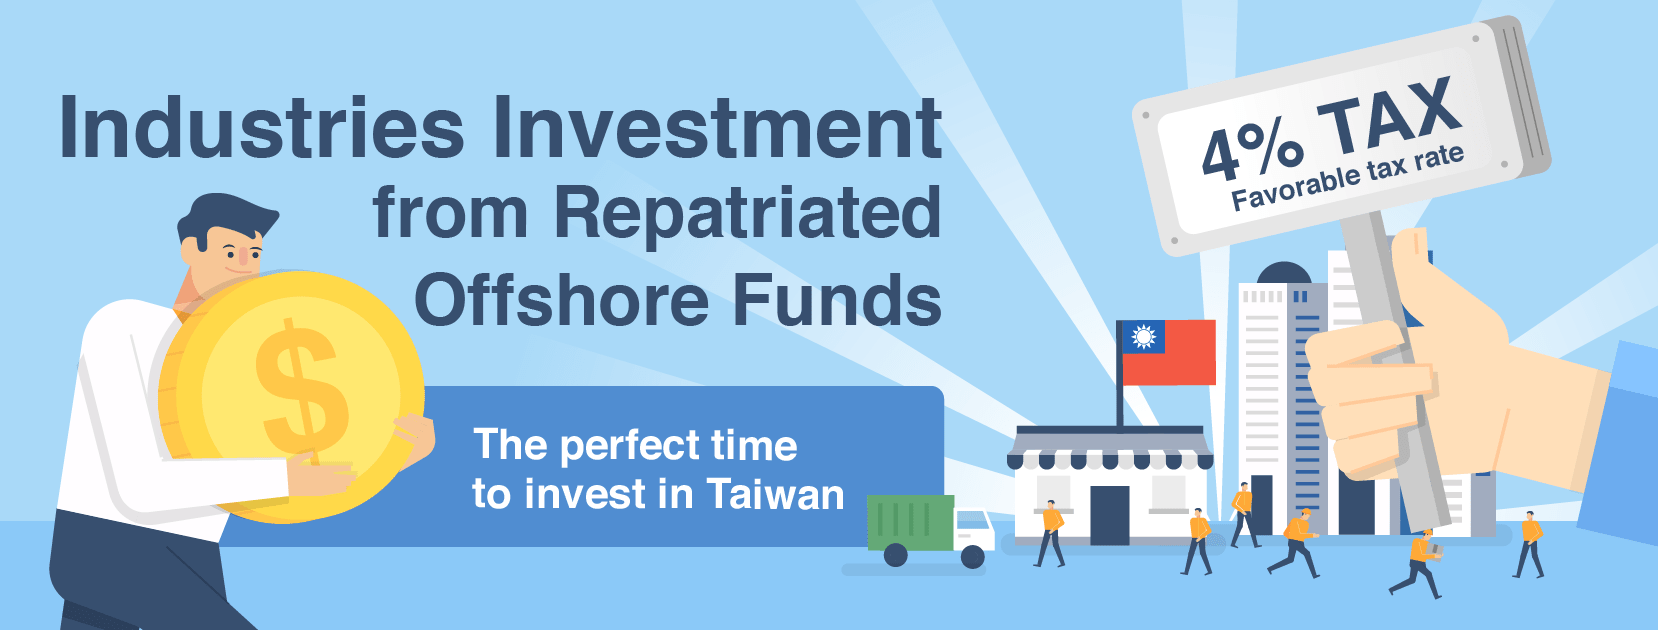 Industries investment from repatriated offshore funds